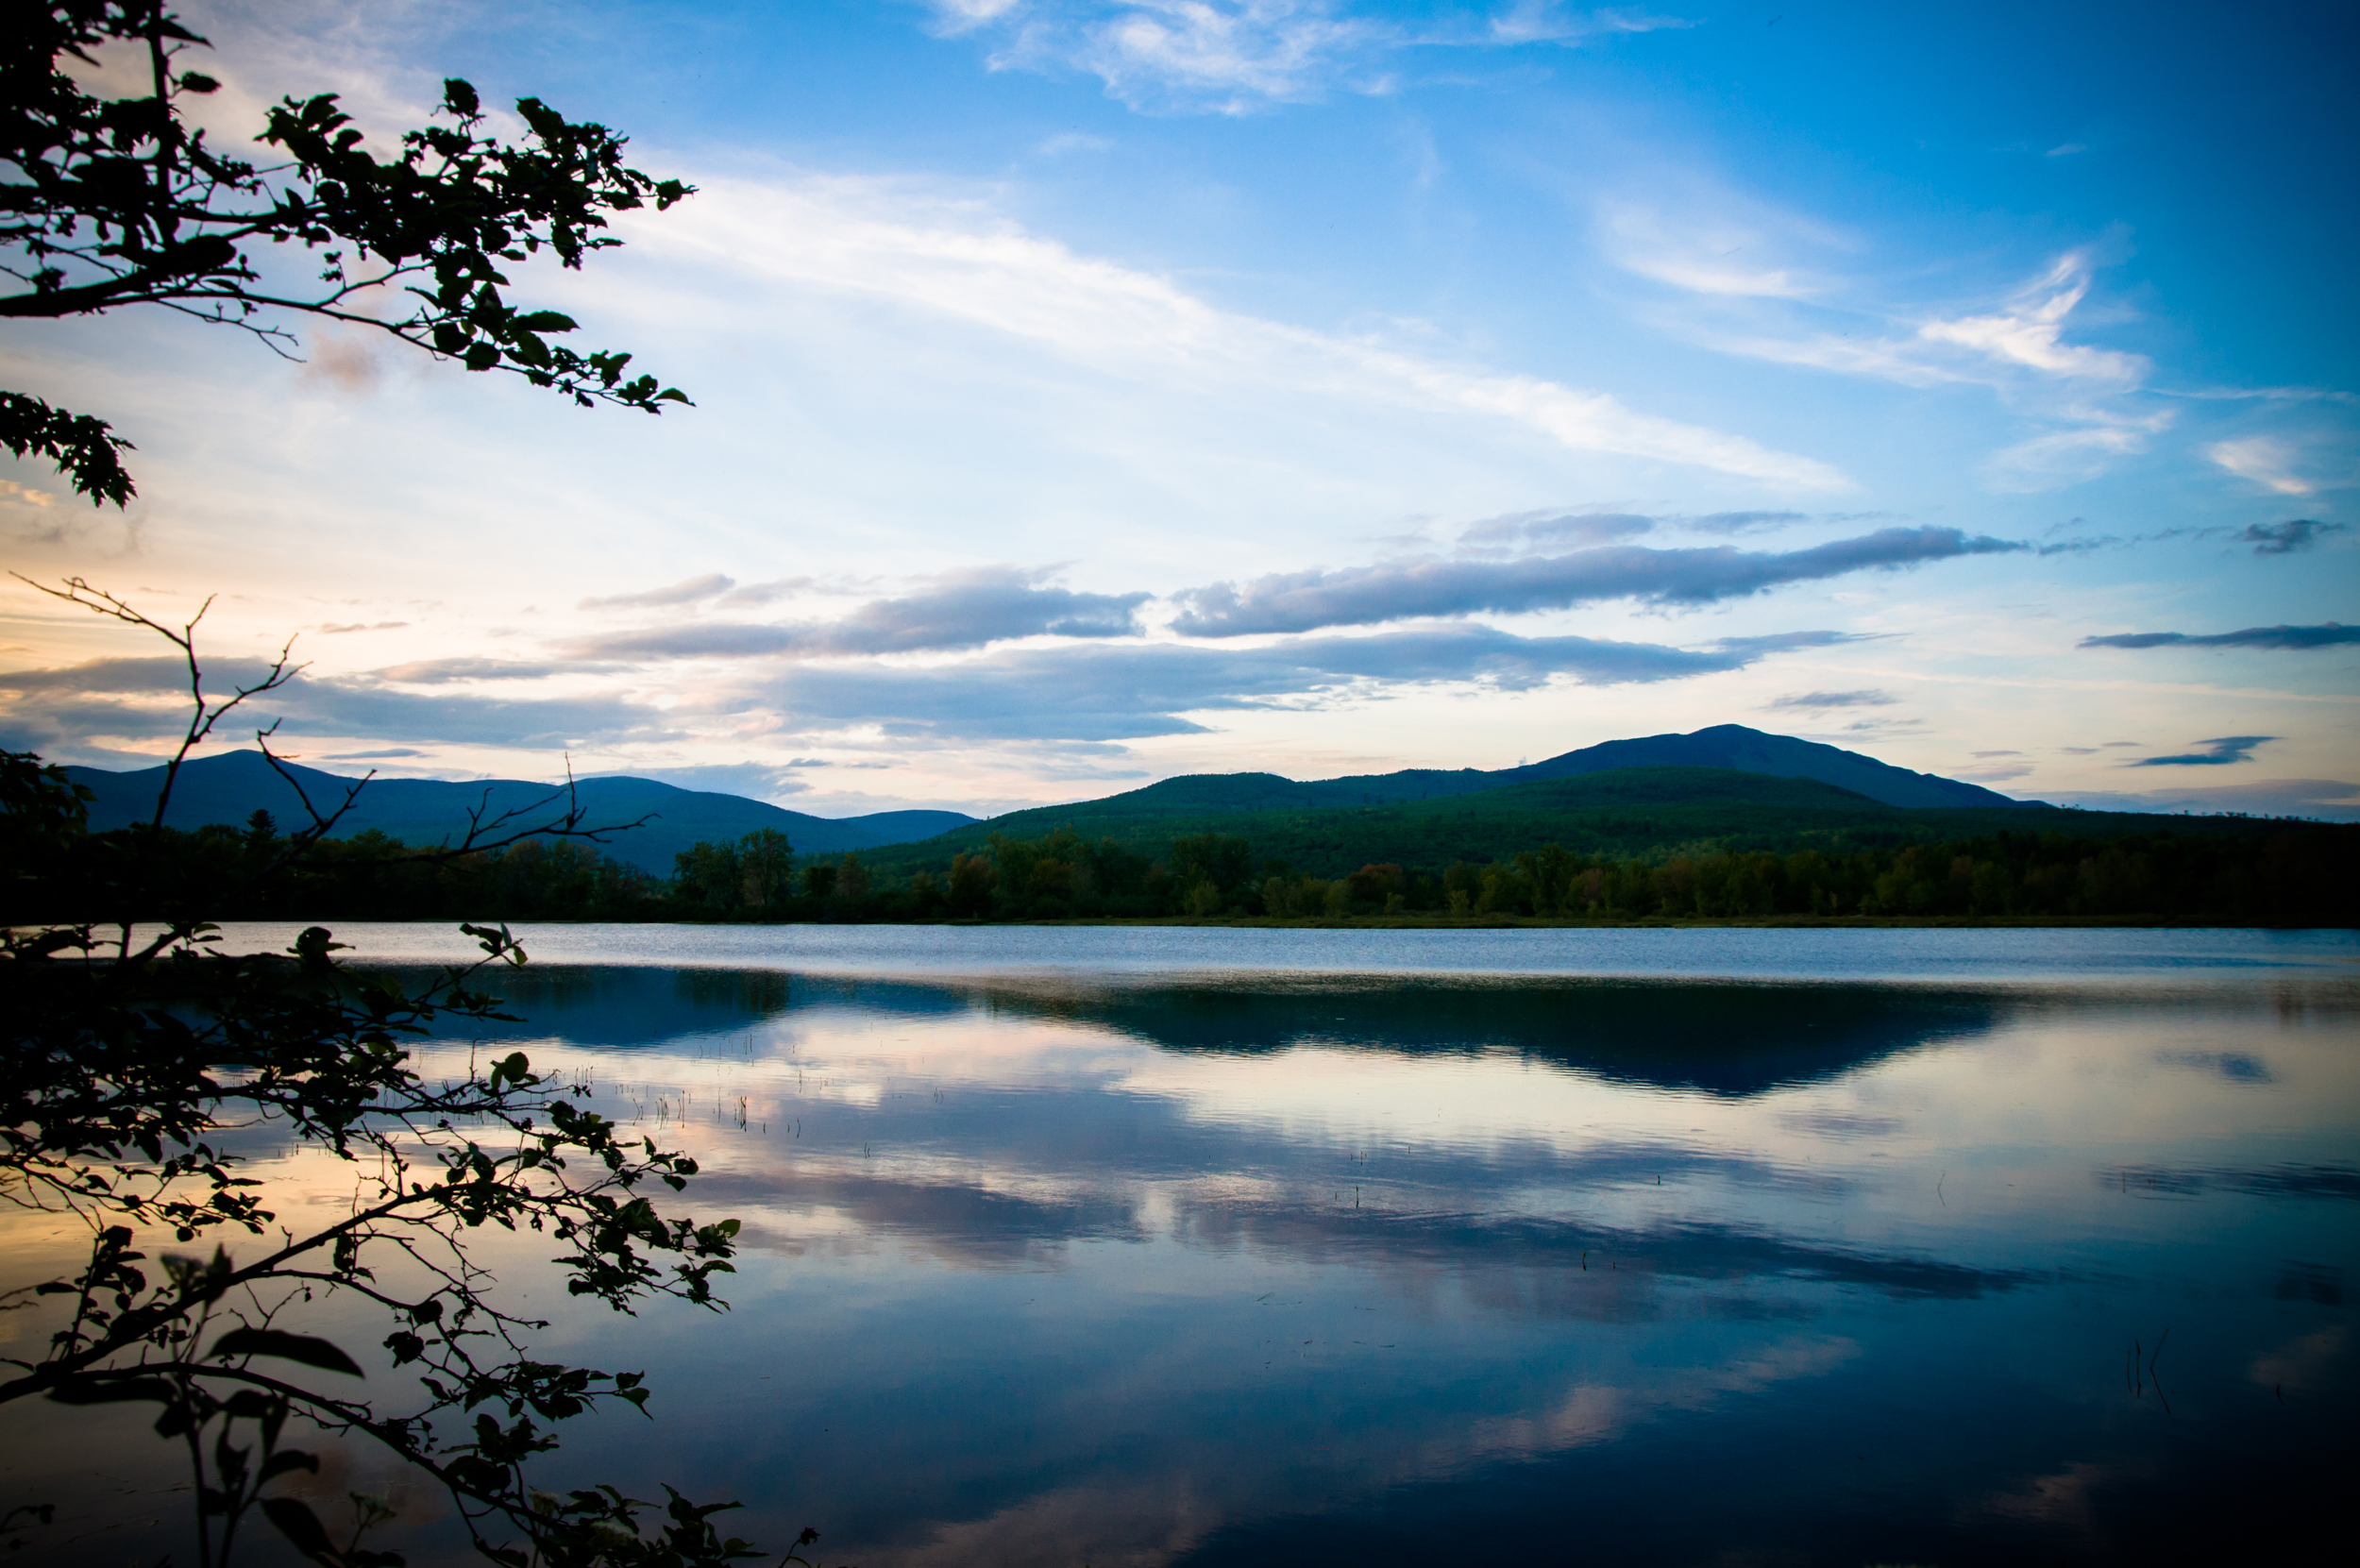 Sunrise Pond, Gulf Hagas, Maine, USA May 2015